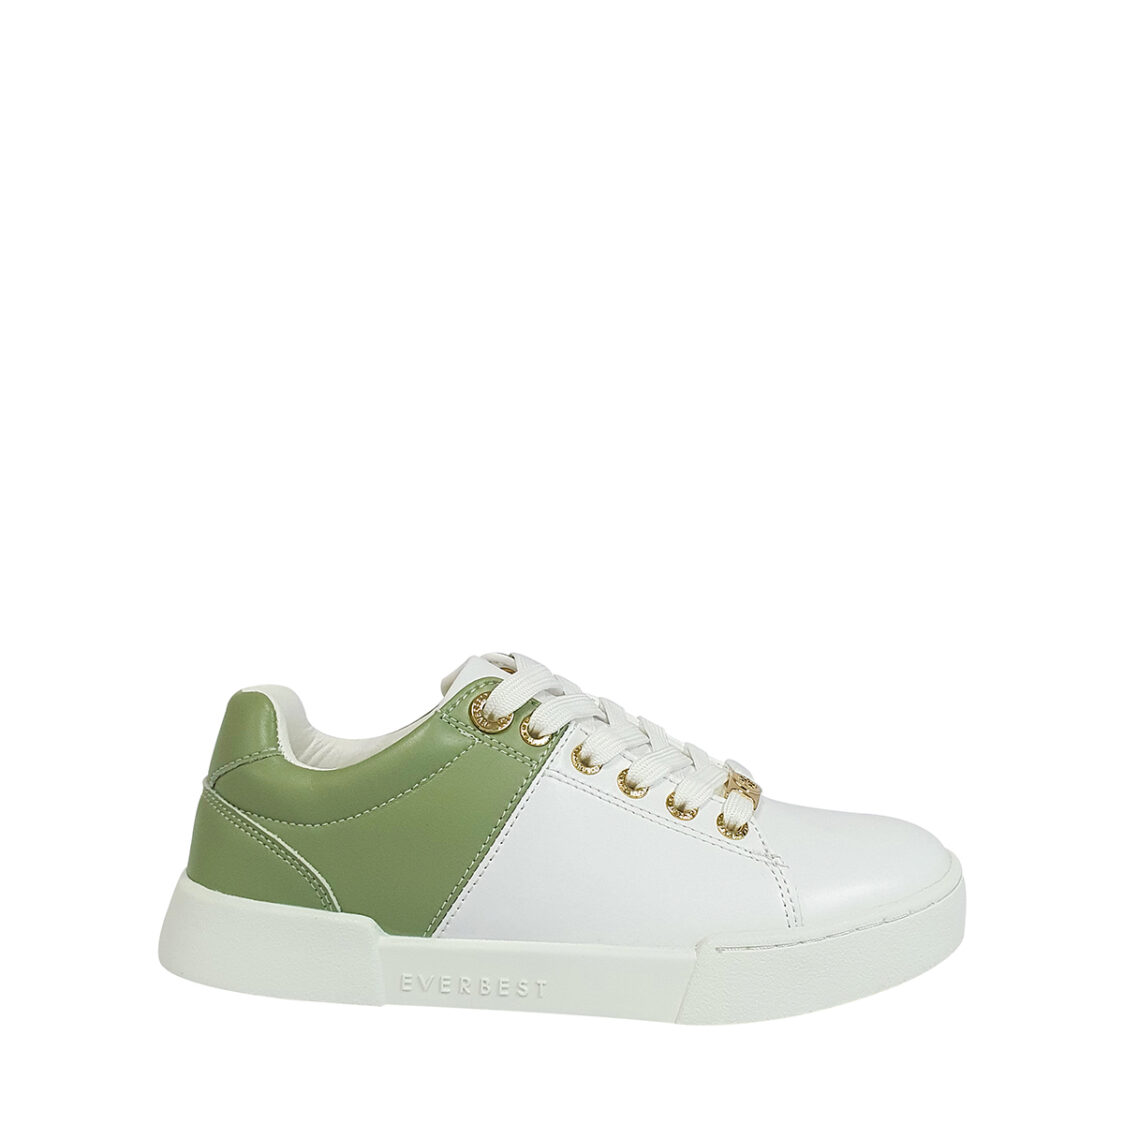 Everbest Comfort Lace Up Sneakers in Green